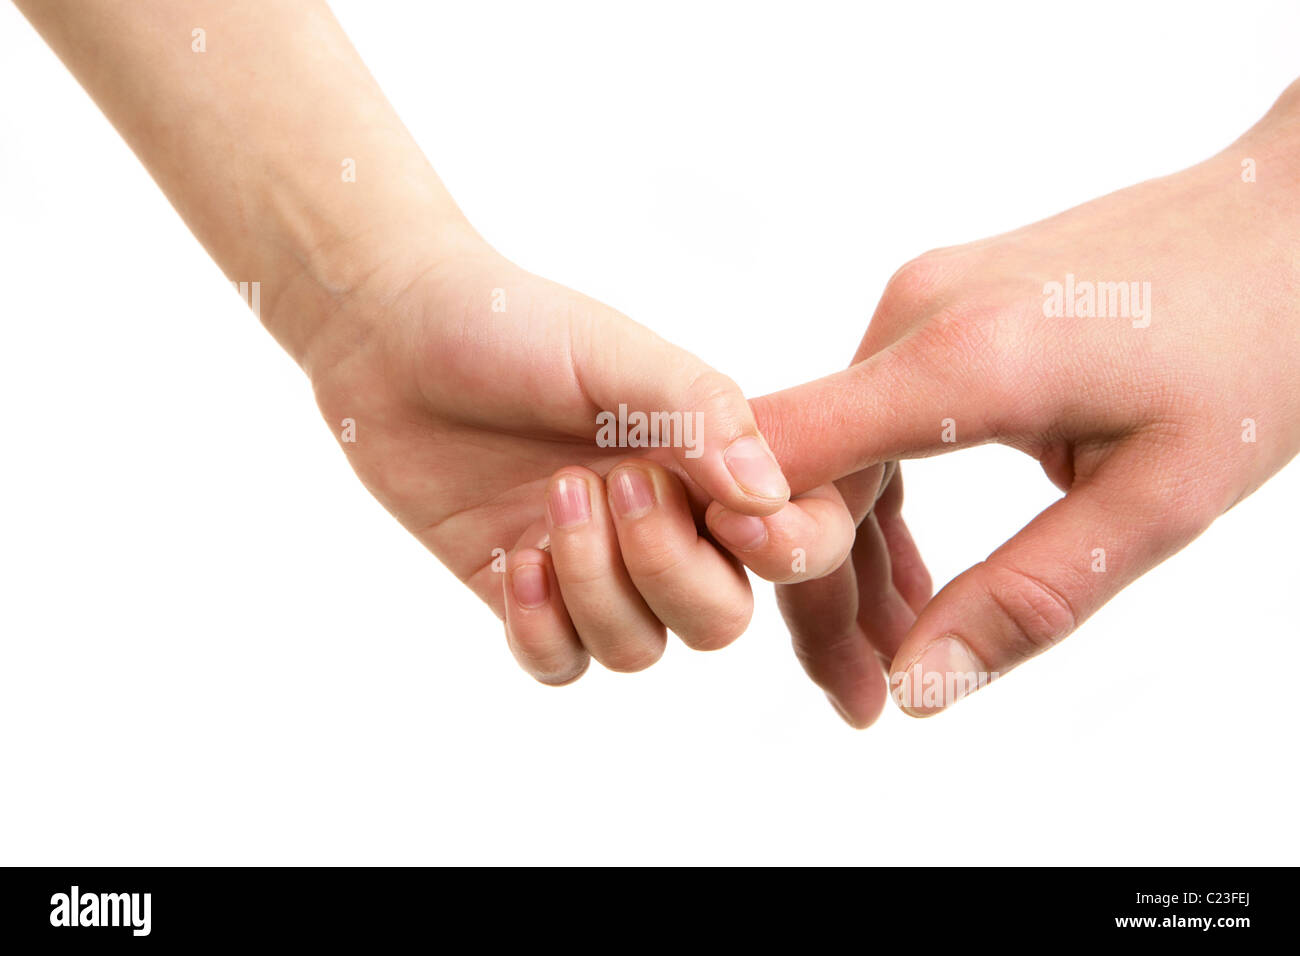 Image of parent's hand holding the one of the child - Stock Image